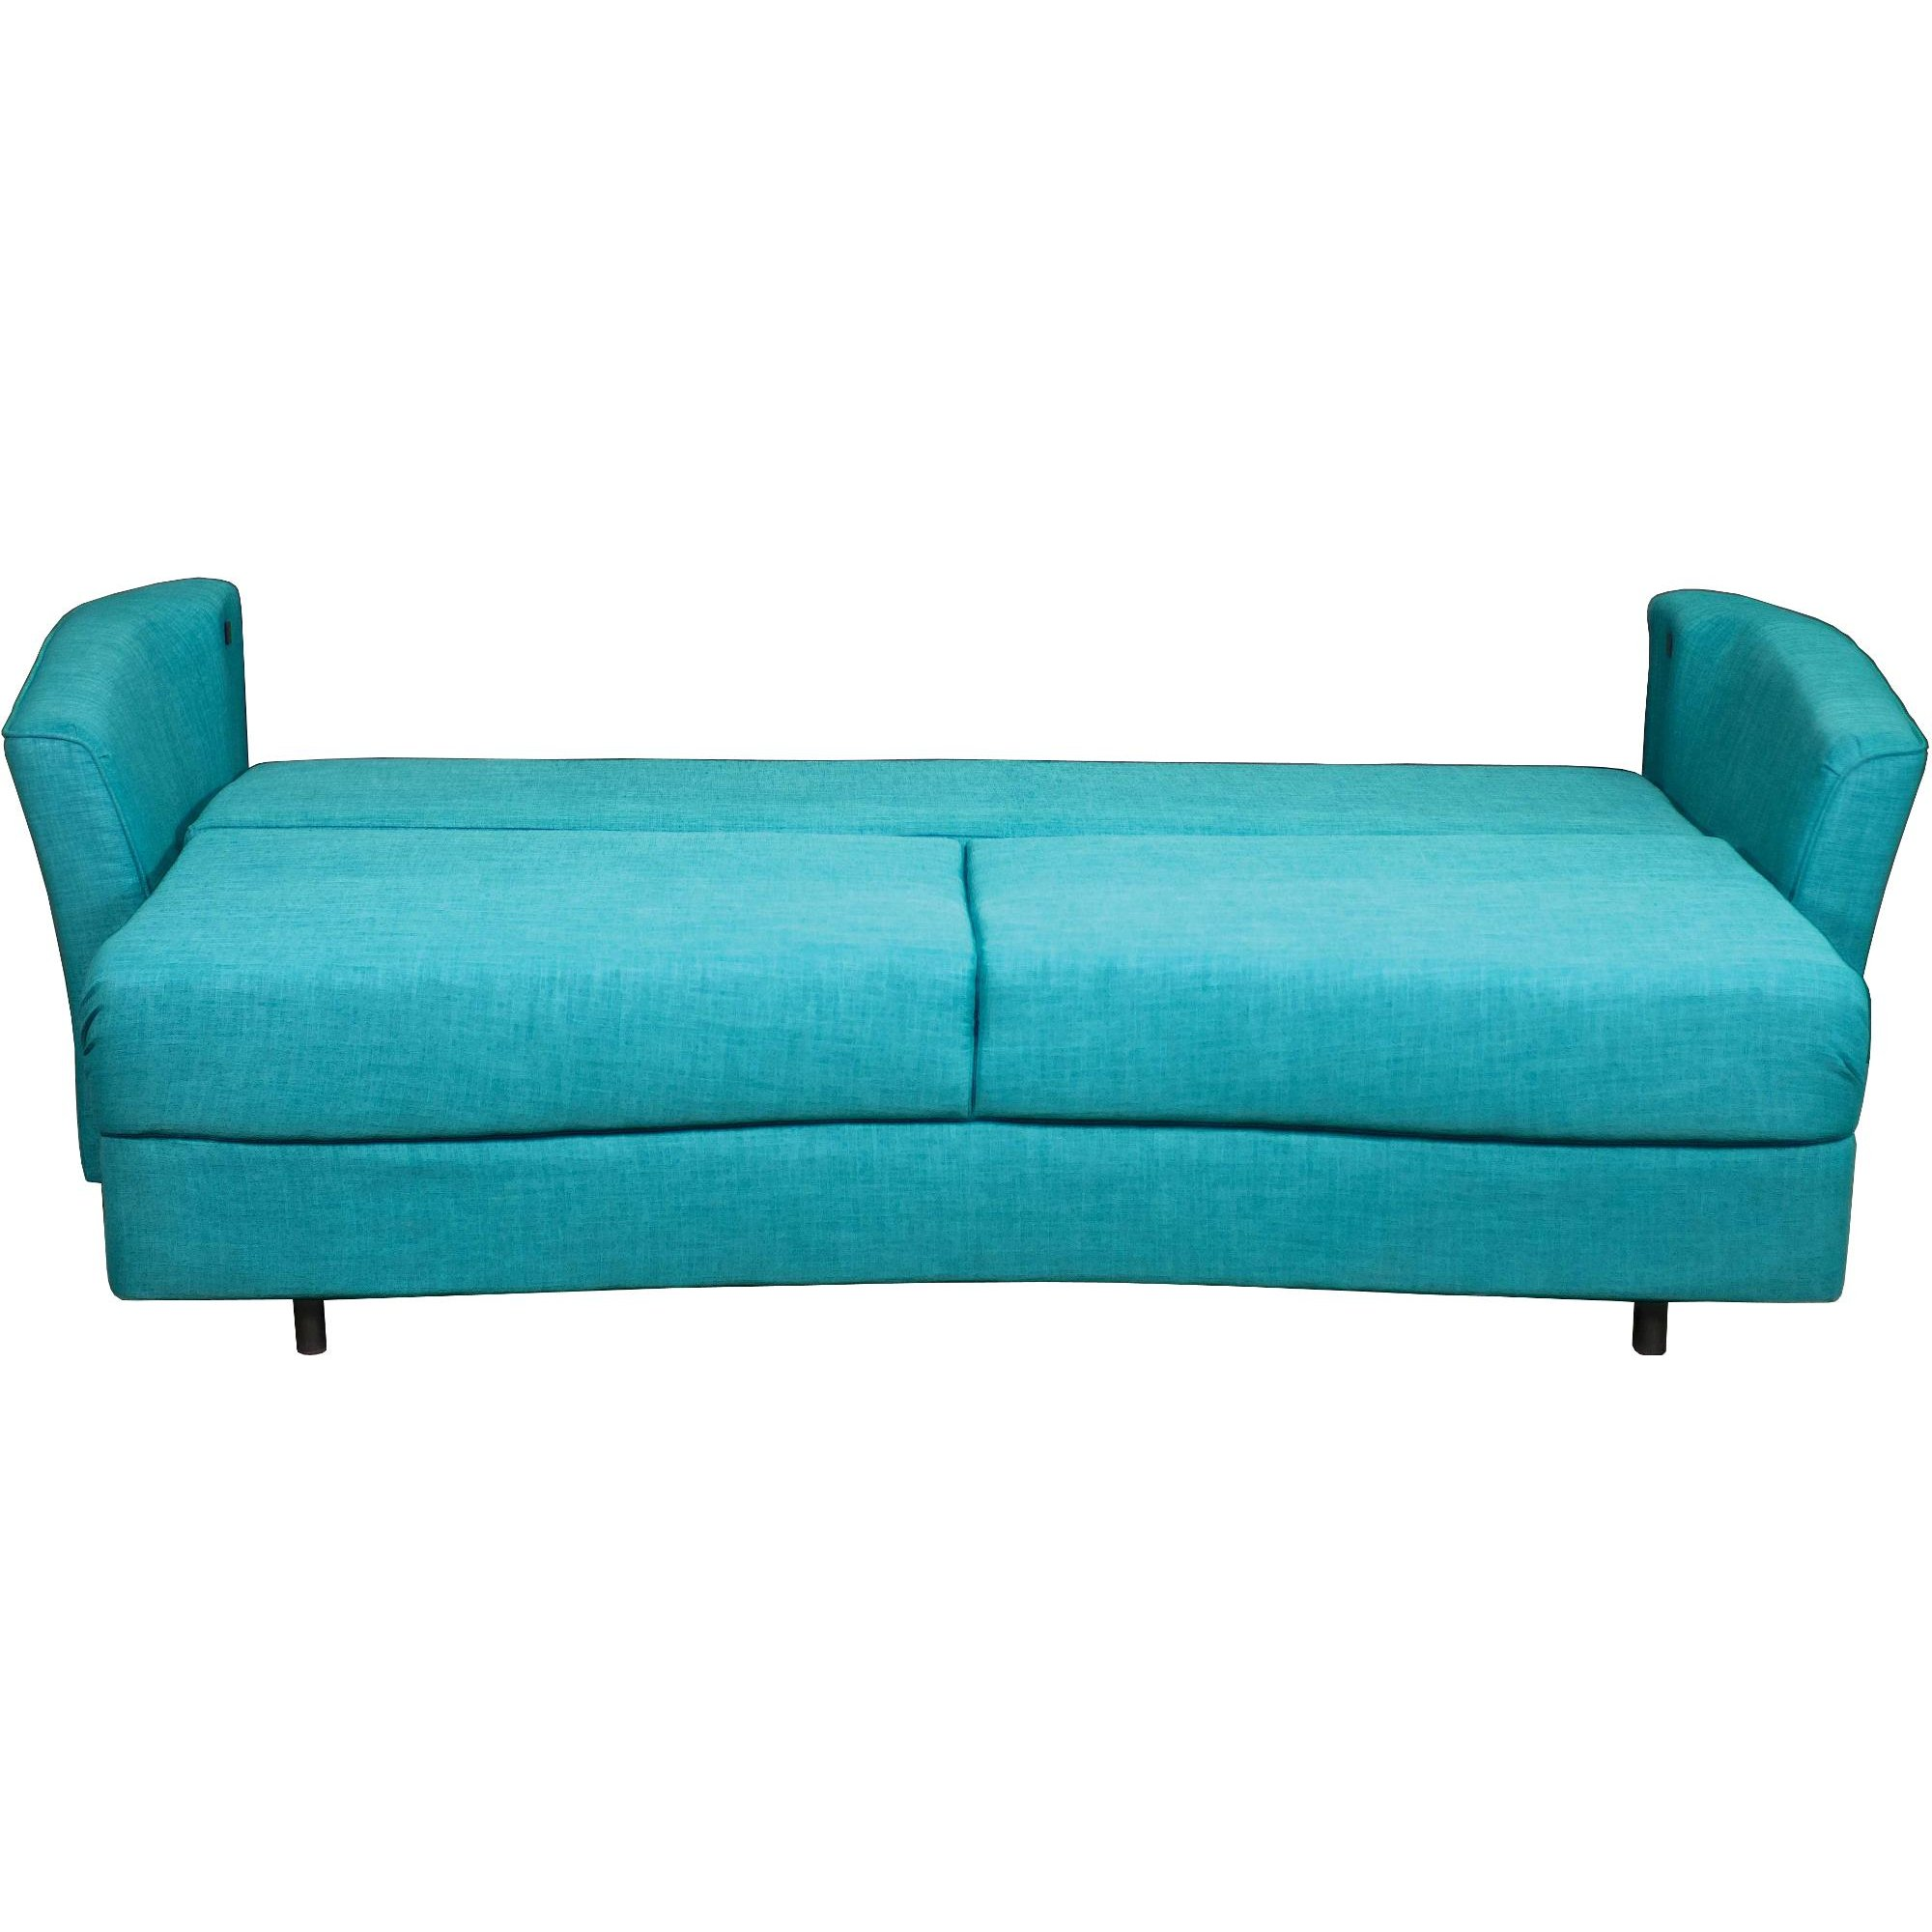 Turquoise Sofa Bed Perch Parrow Butch 3 Seater TheSofa